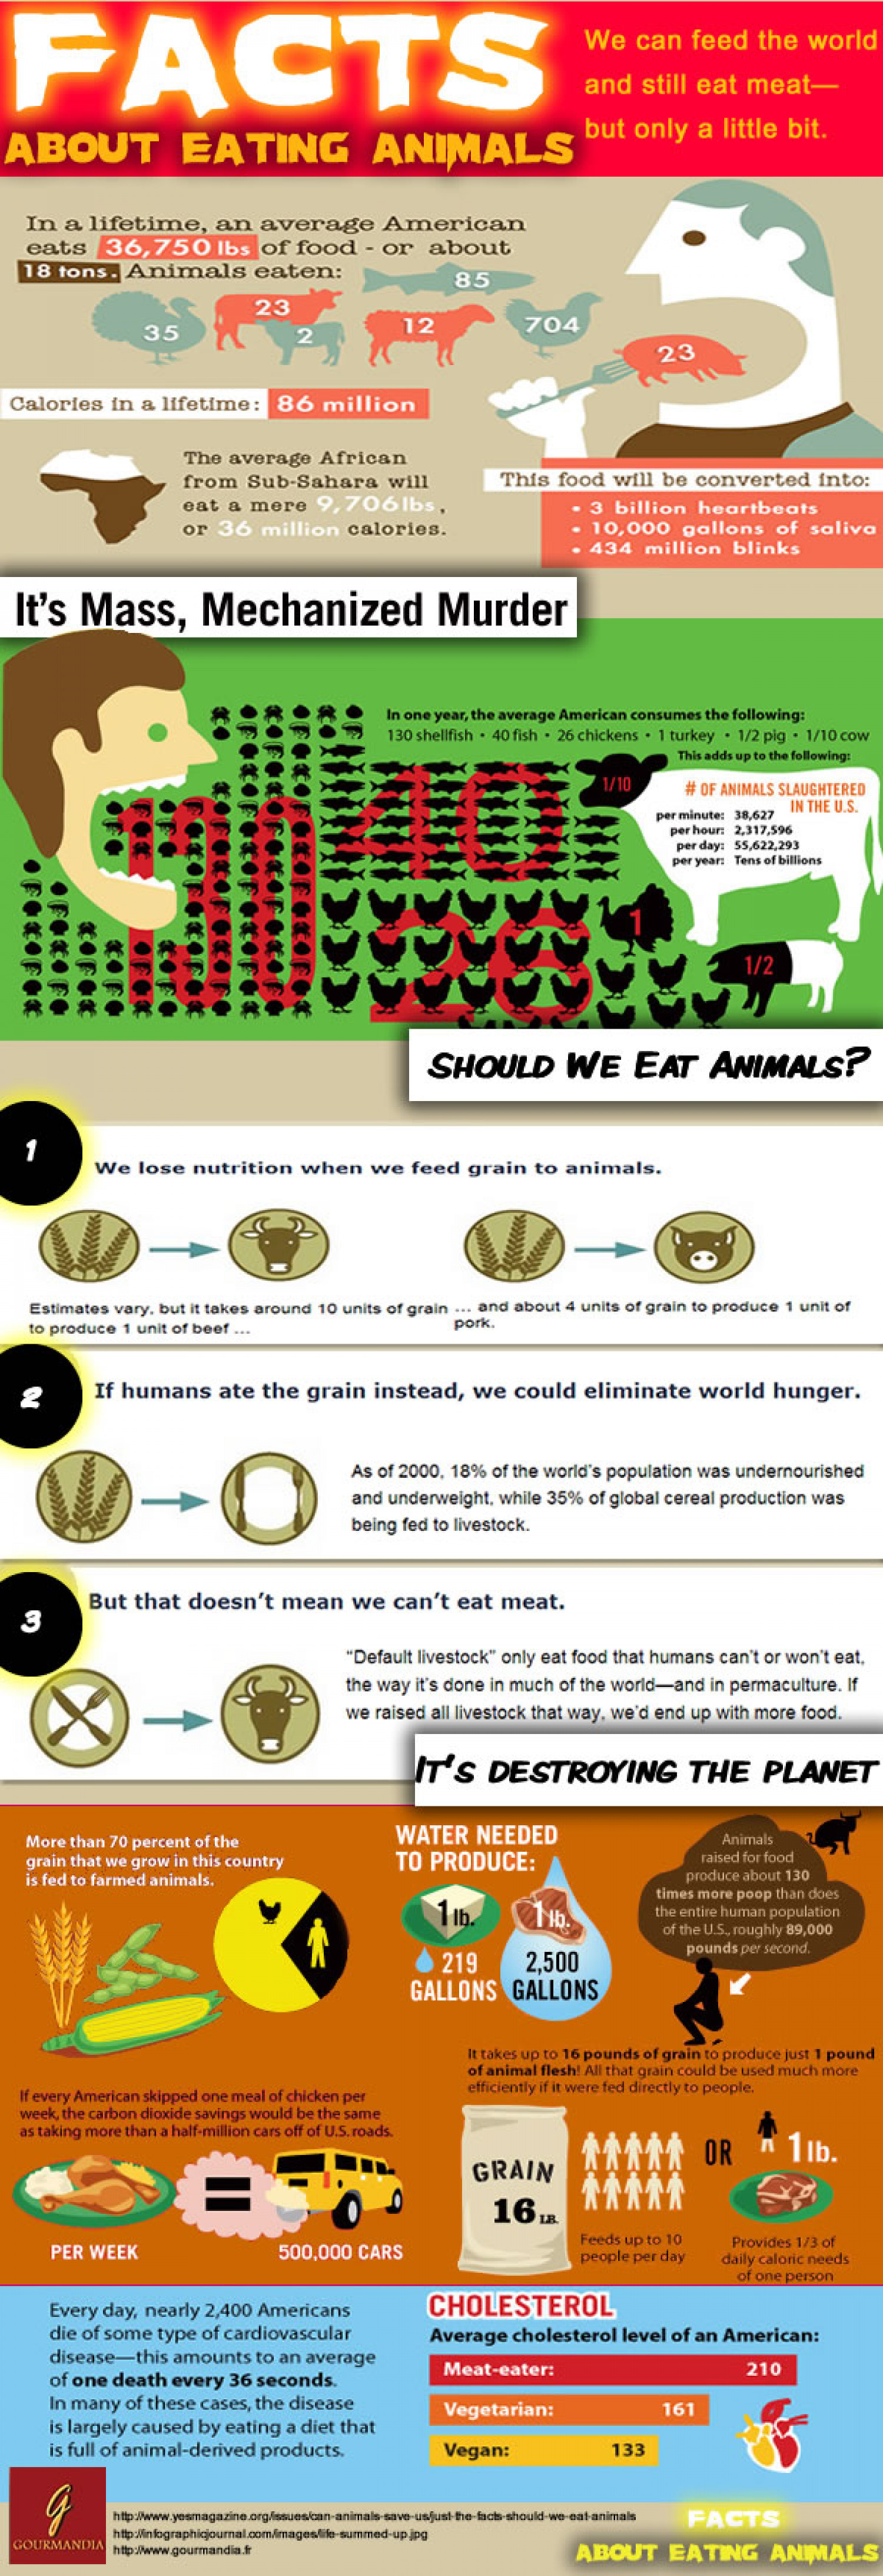 Facts: Eating Animals Infographic